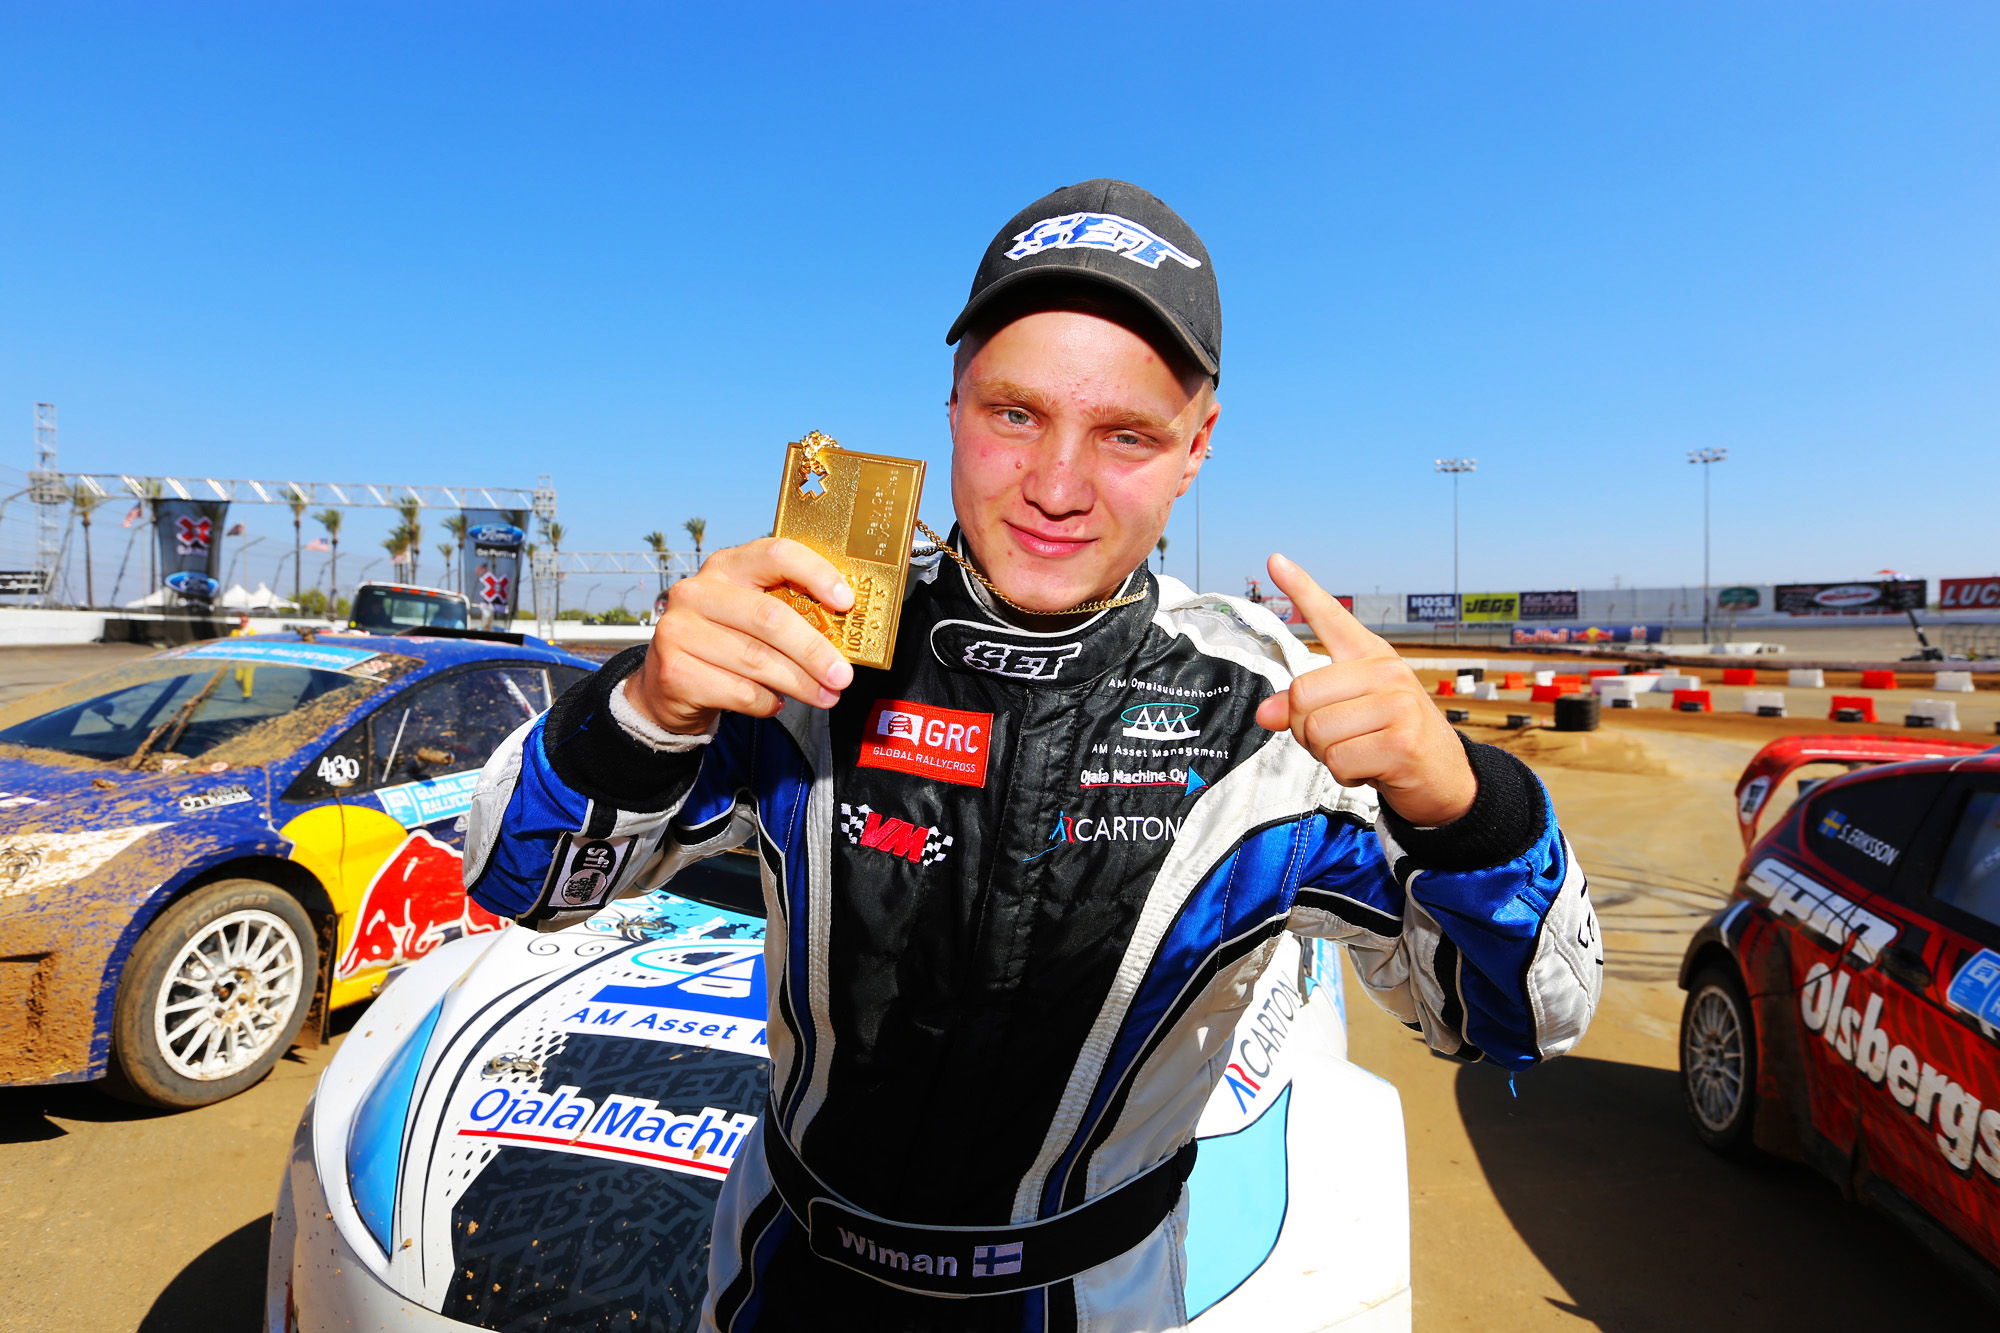 Wiman to test Supercars with OlsbergsMSE